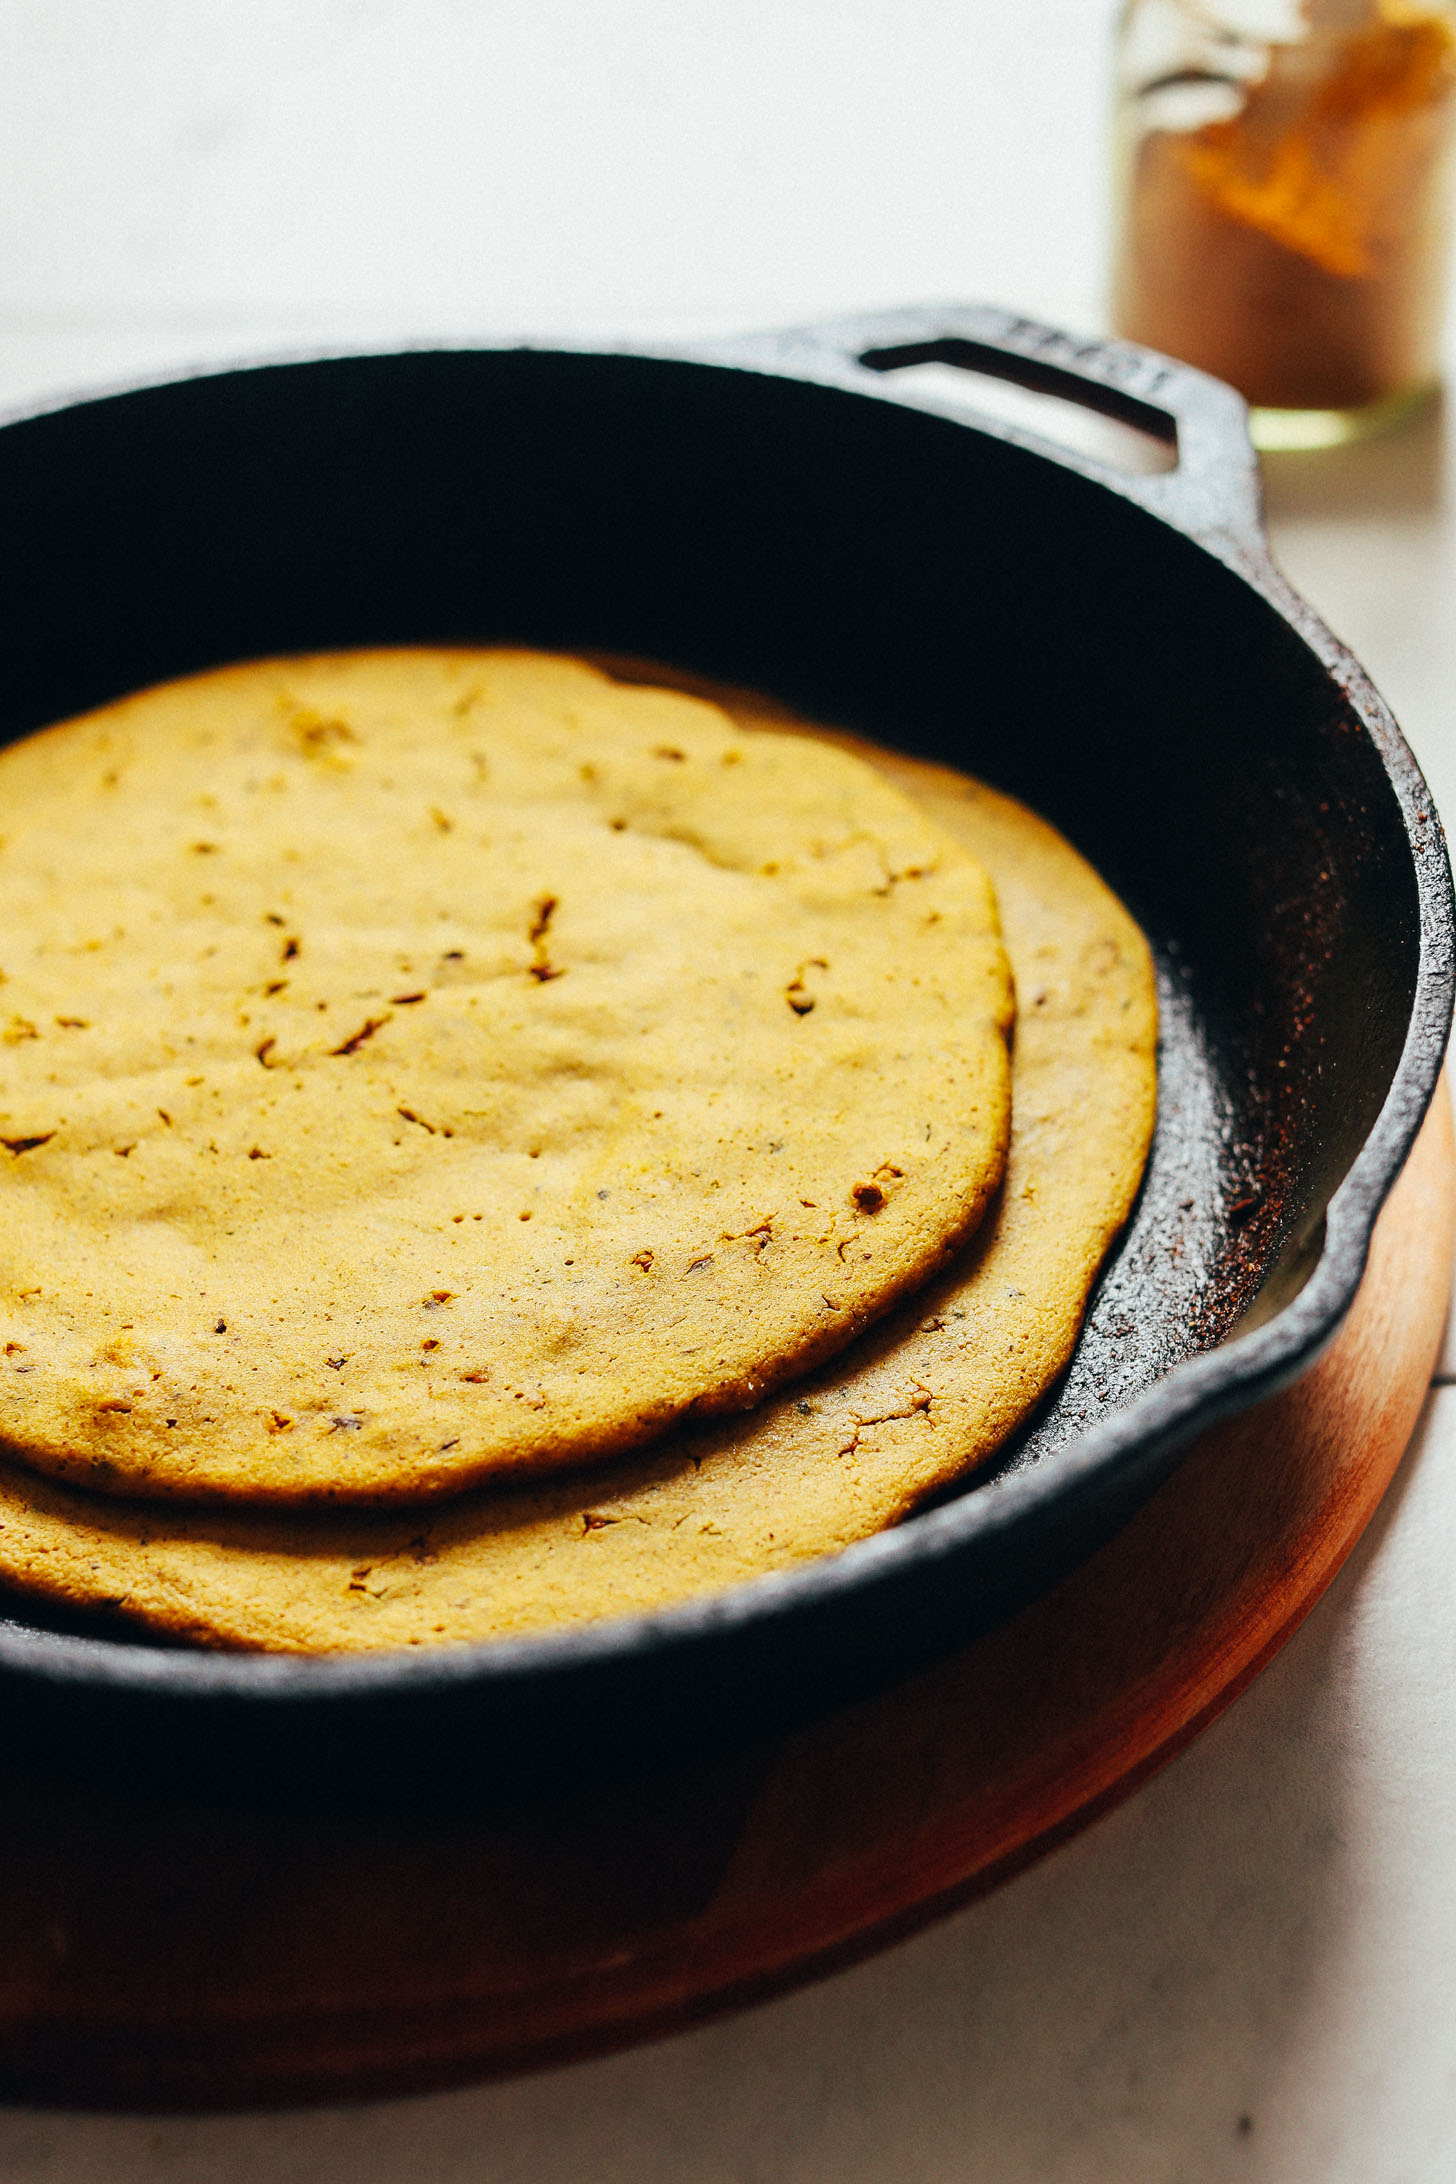 Freshly cooked Curried Socca bread resting in a skillet